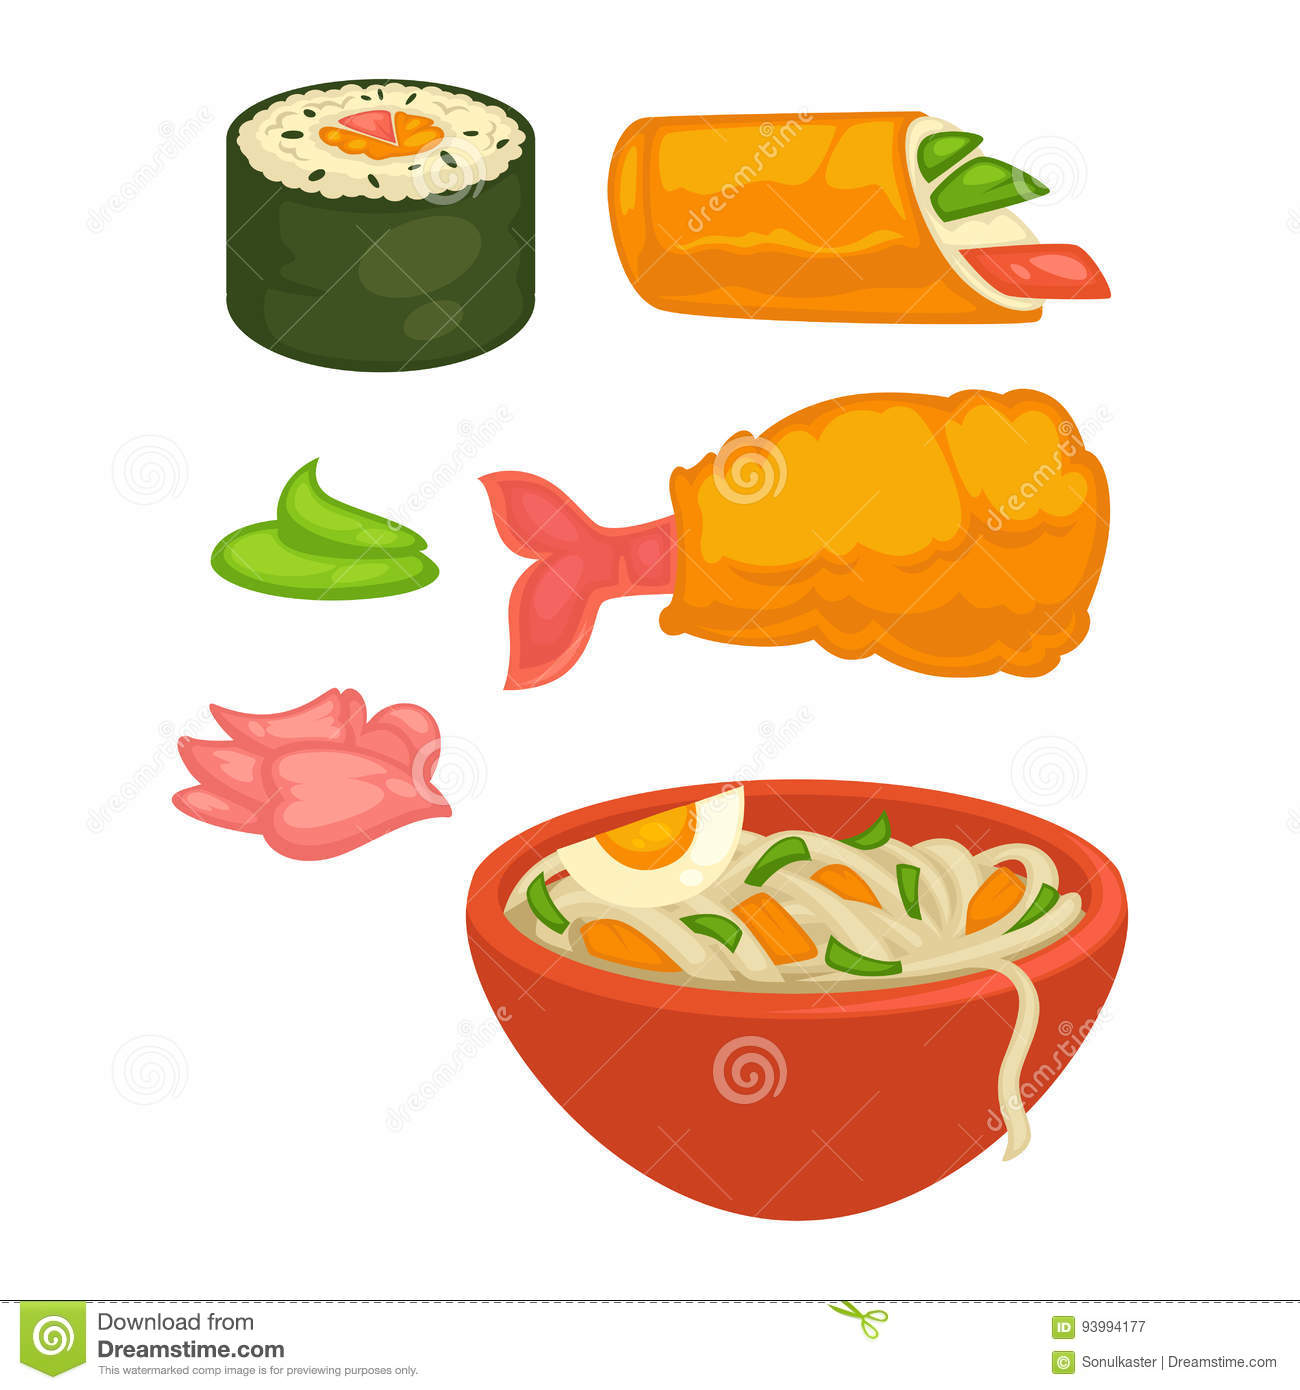 Sushi rolls and Japanese cuisine food snacks vector flat icons